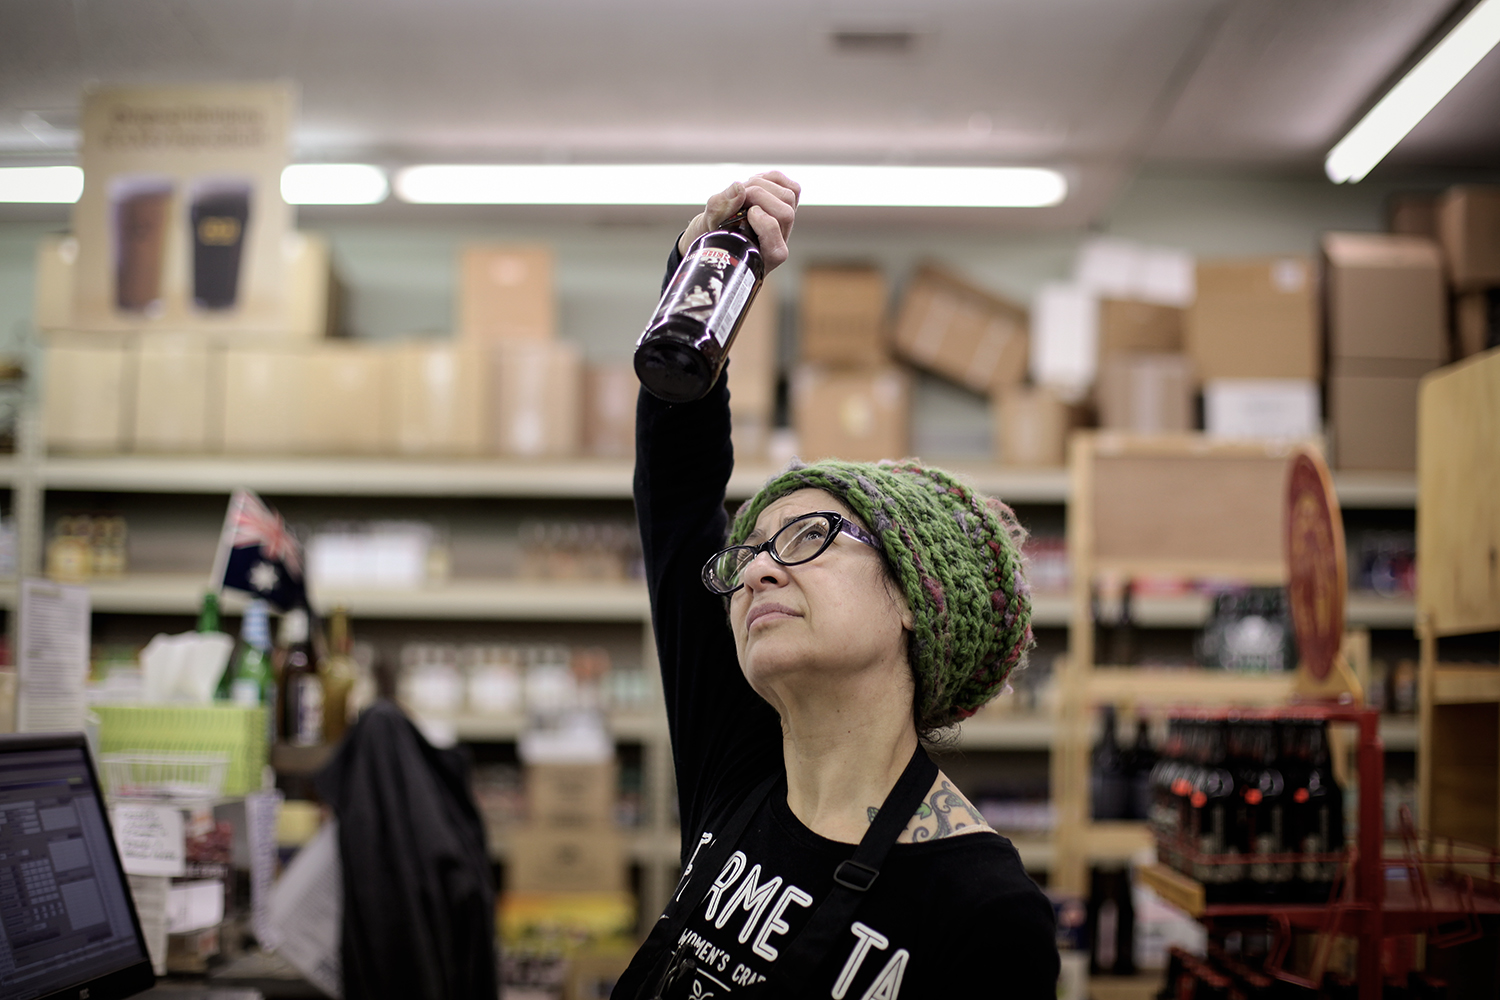 Annette May from Allen Park holds a bottle of beer up to the light to determine what type of beer it is at Merchant's Fine Wine on Wednesday, Feb. 4, 2015 in Dearborn. May is the first Cicerone certified woman in the State of Michigan and is involved with Fermenta, a Michigan women's craft collective. Tim Galloway/Special for DFP